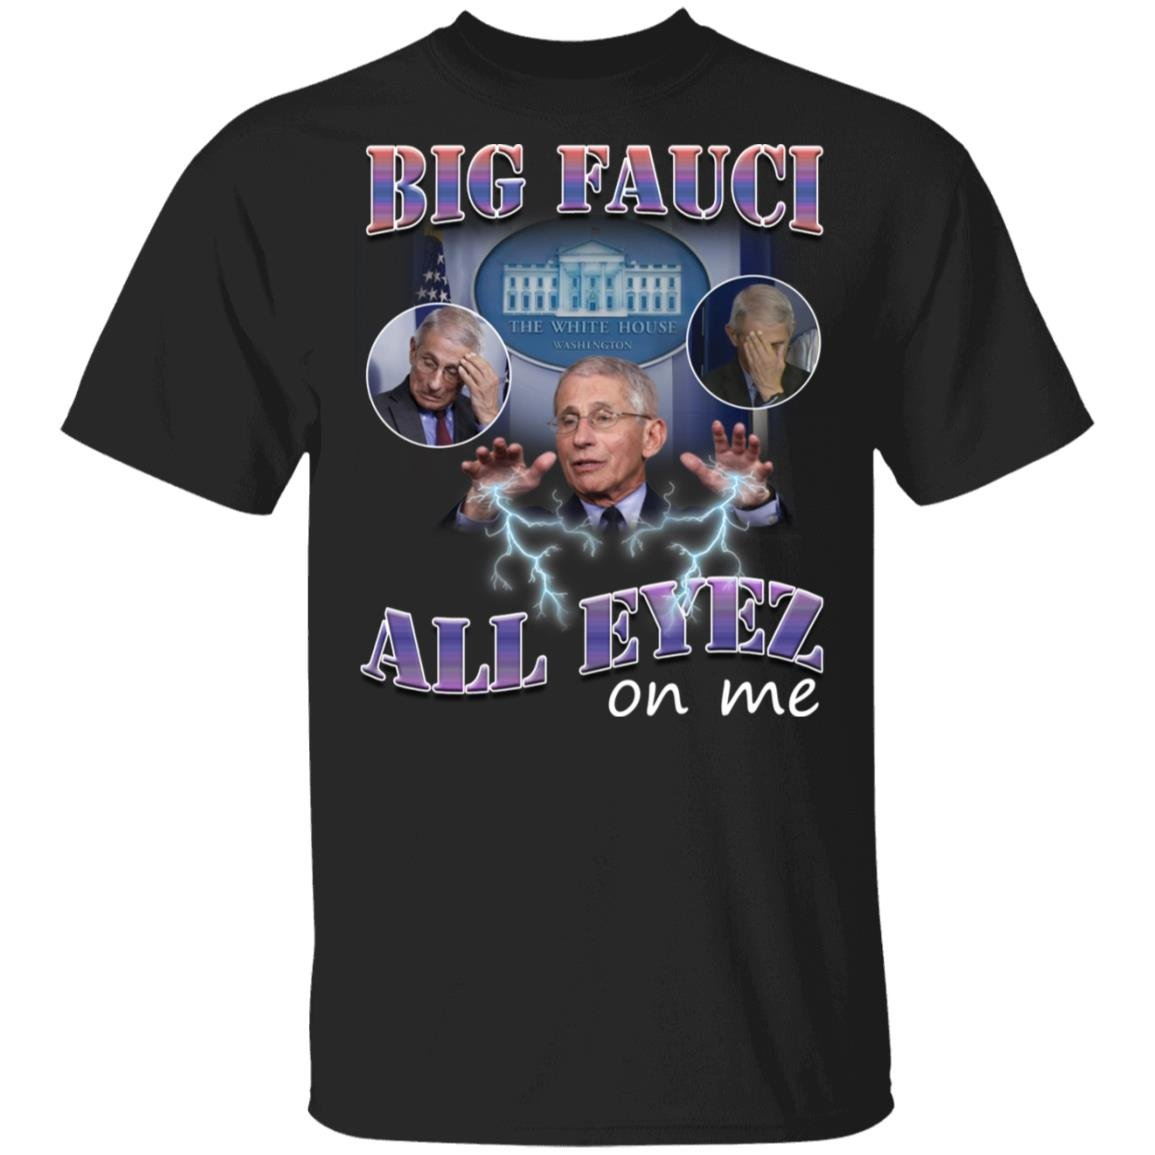 Big Fauci all eyez on me shirt, sweatshirt, hoodie